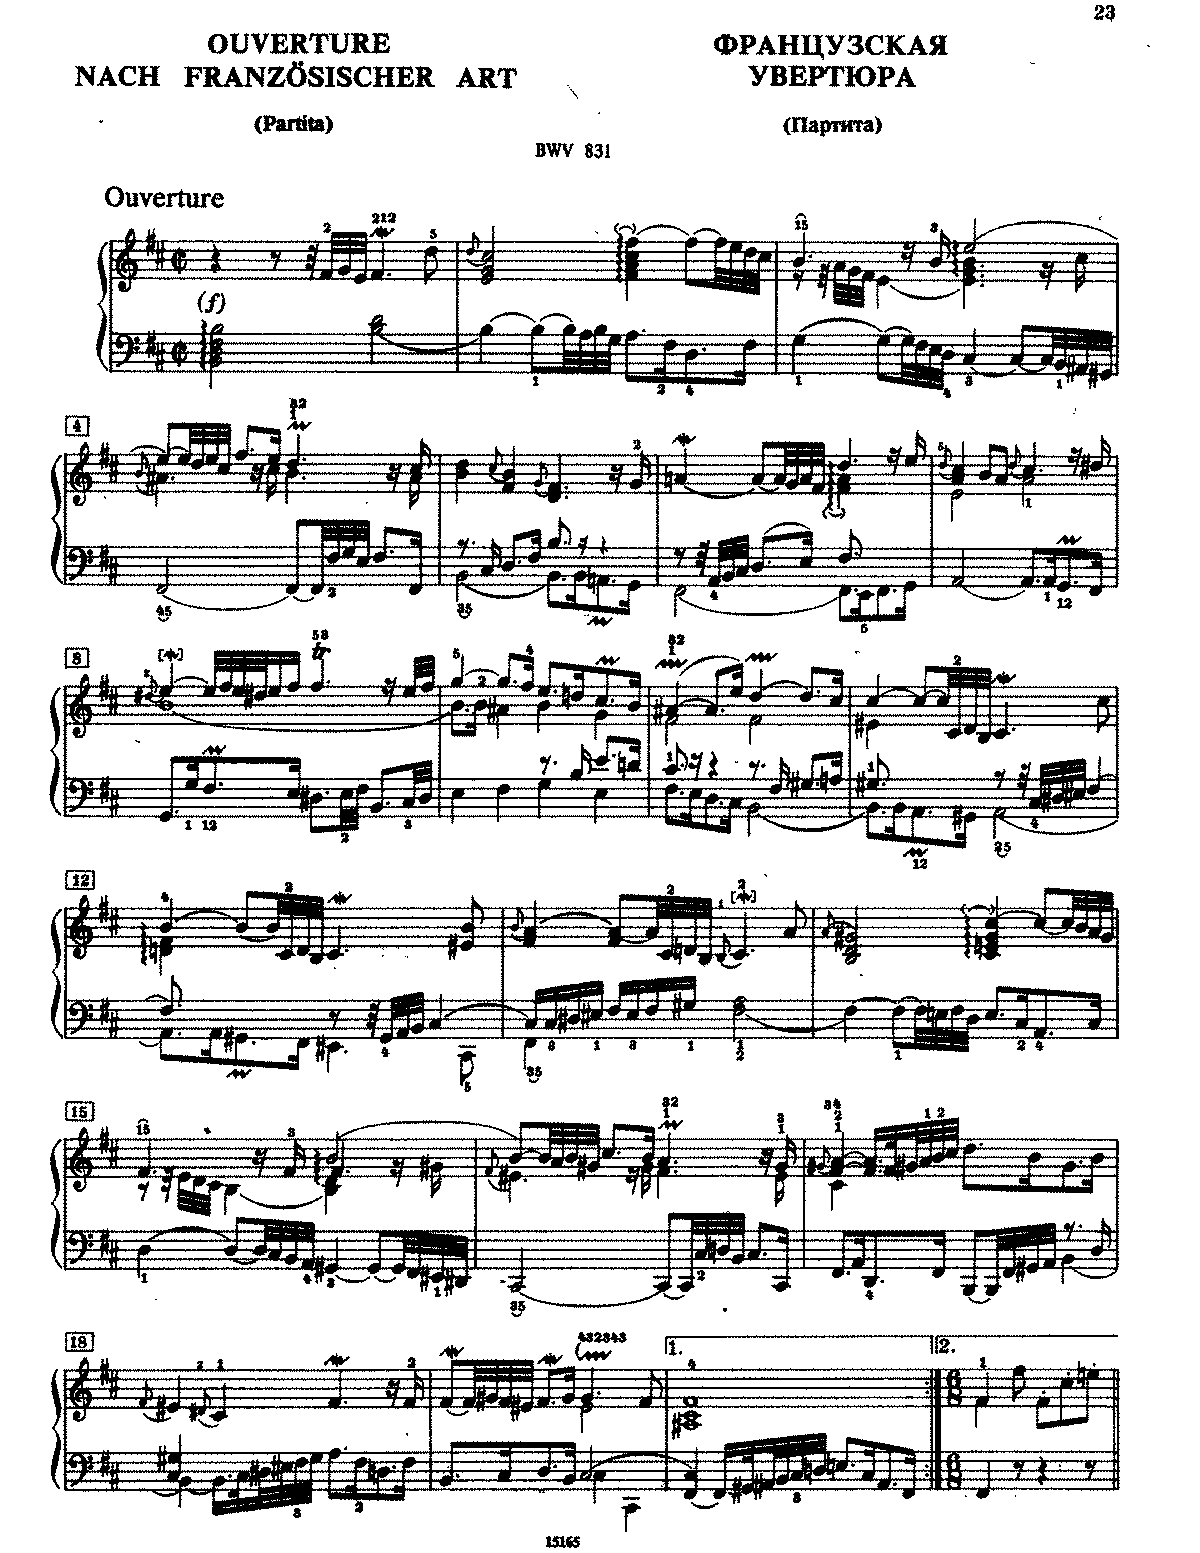 PMLP02955-French Overture in B BWV 831.pdf